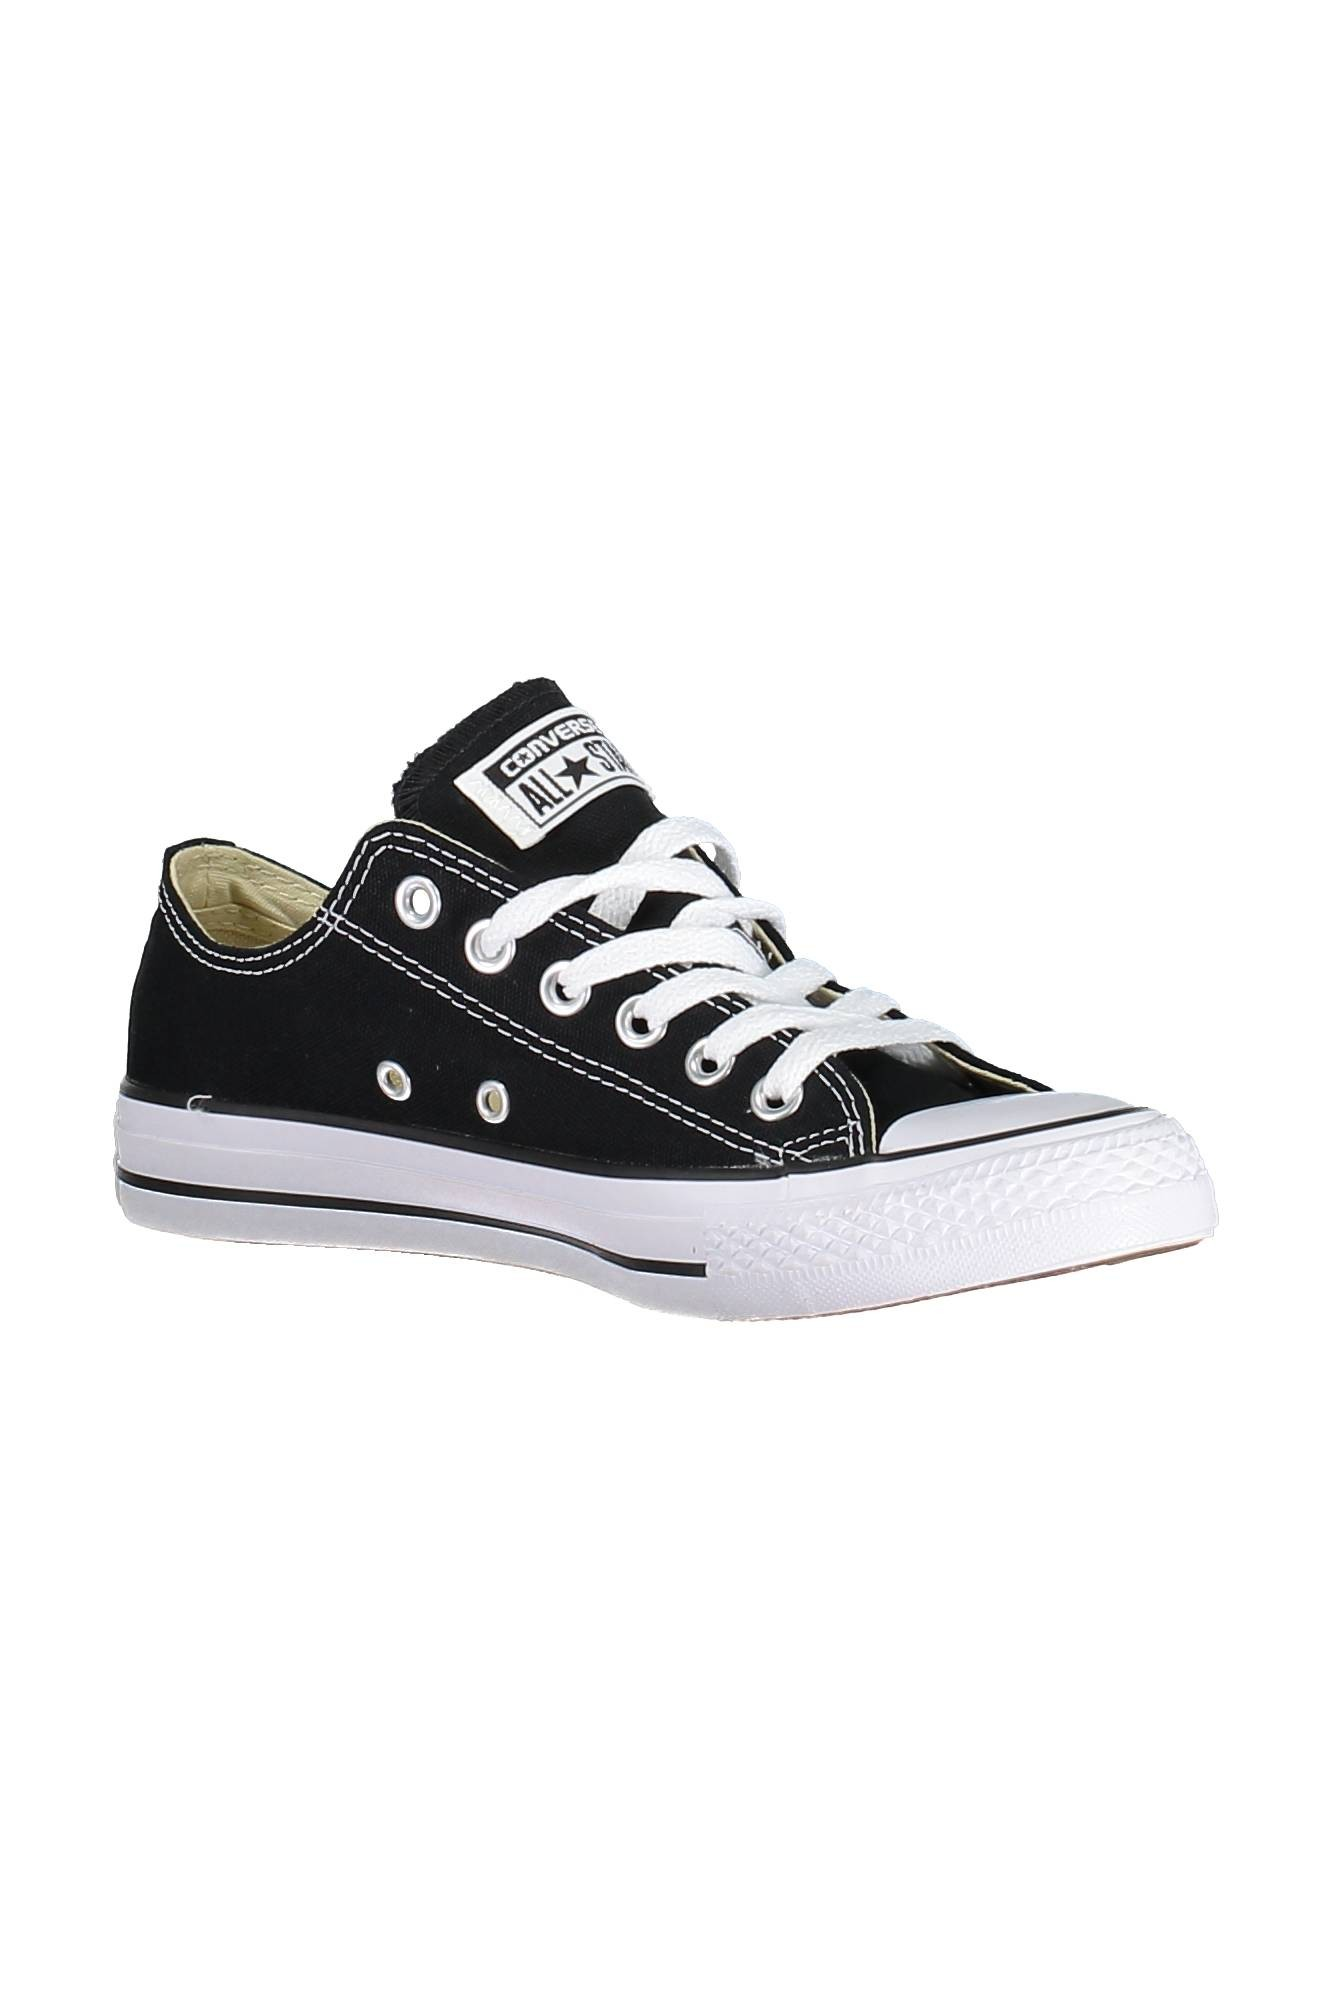 Converse Clothing Women Men B2B GRIFFATI